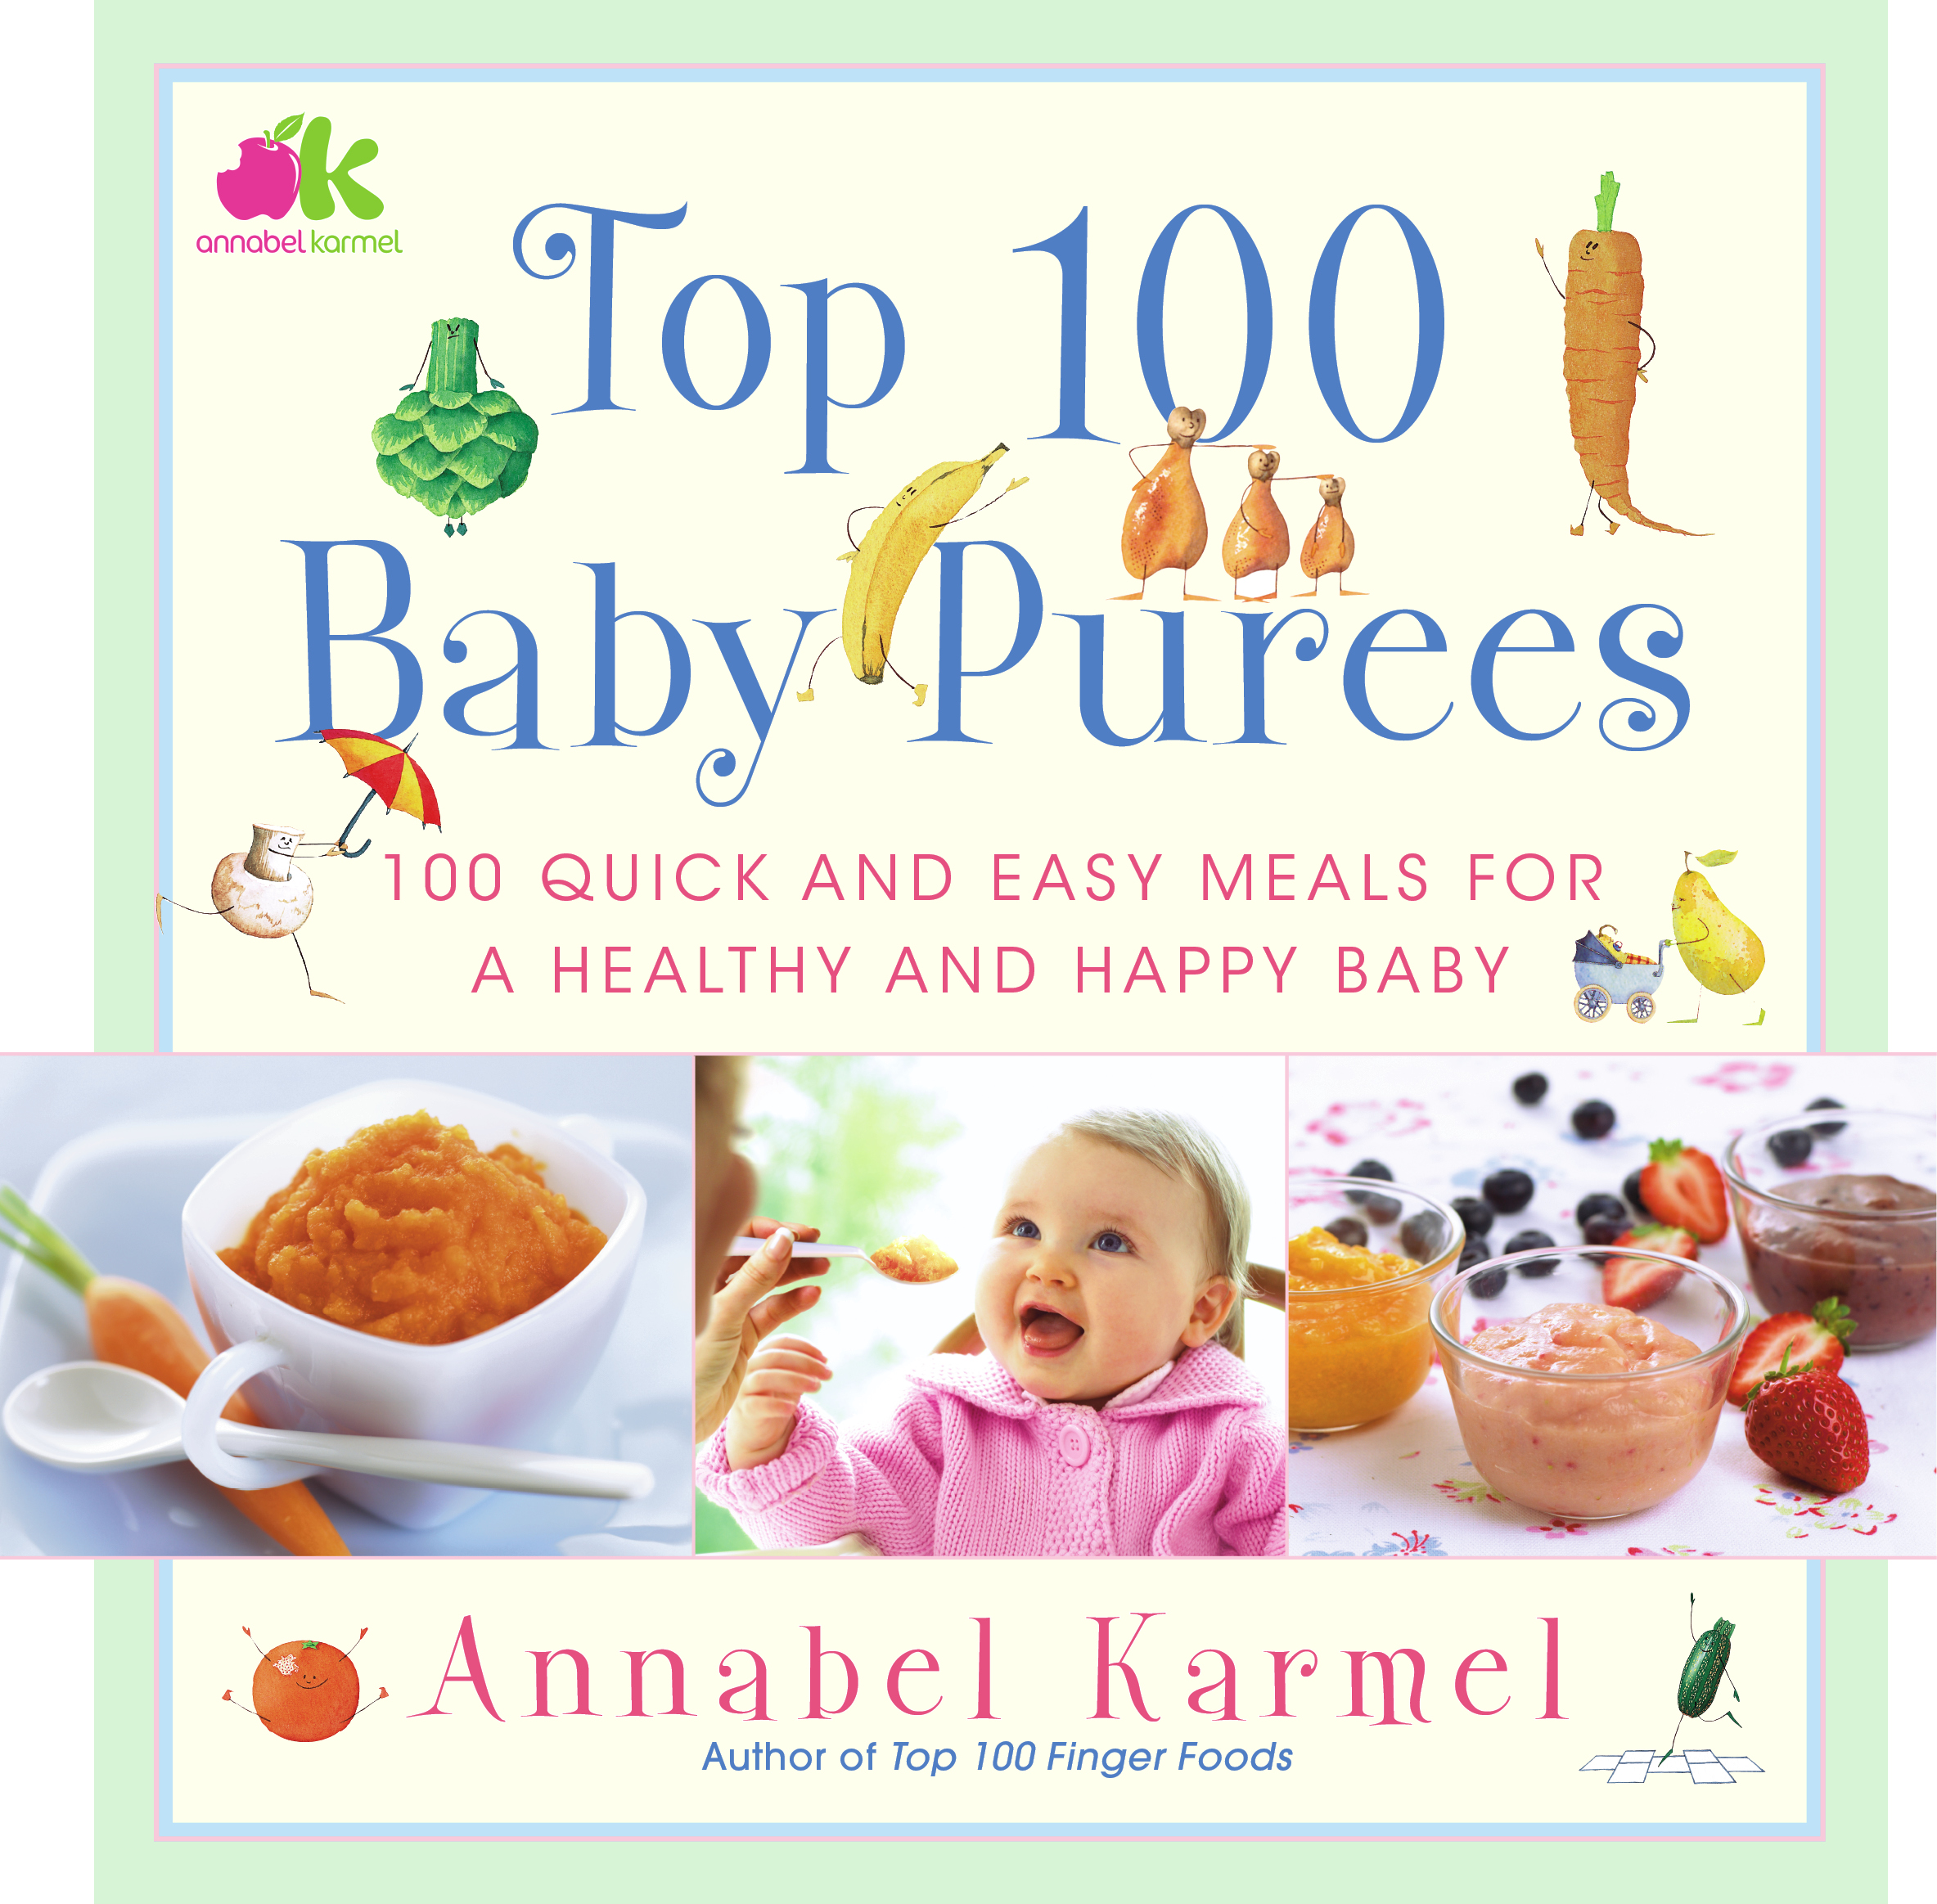 Top 100 baby purees book by annabel karmel official publisher cvr9780743289573 9780743289573 hr forumfinder Images